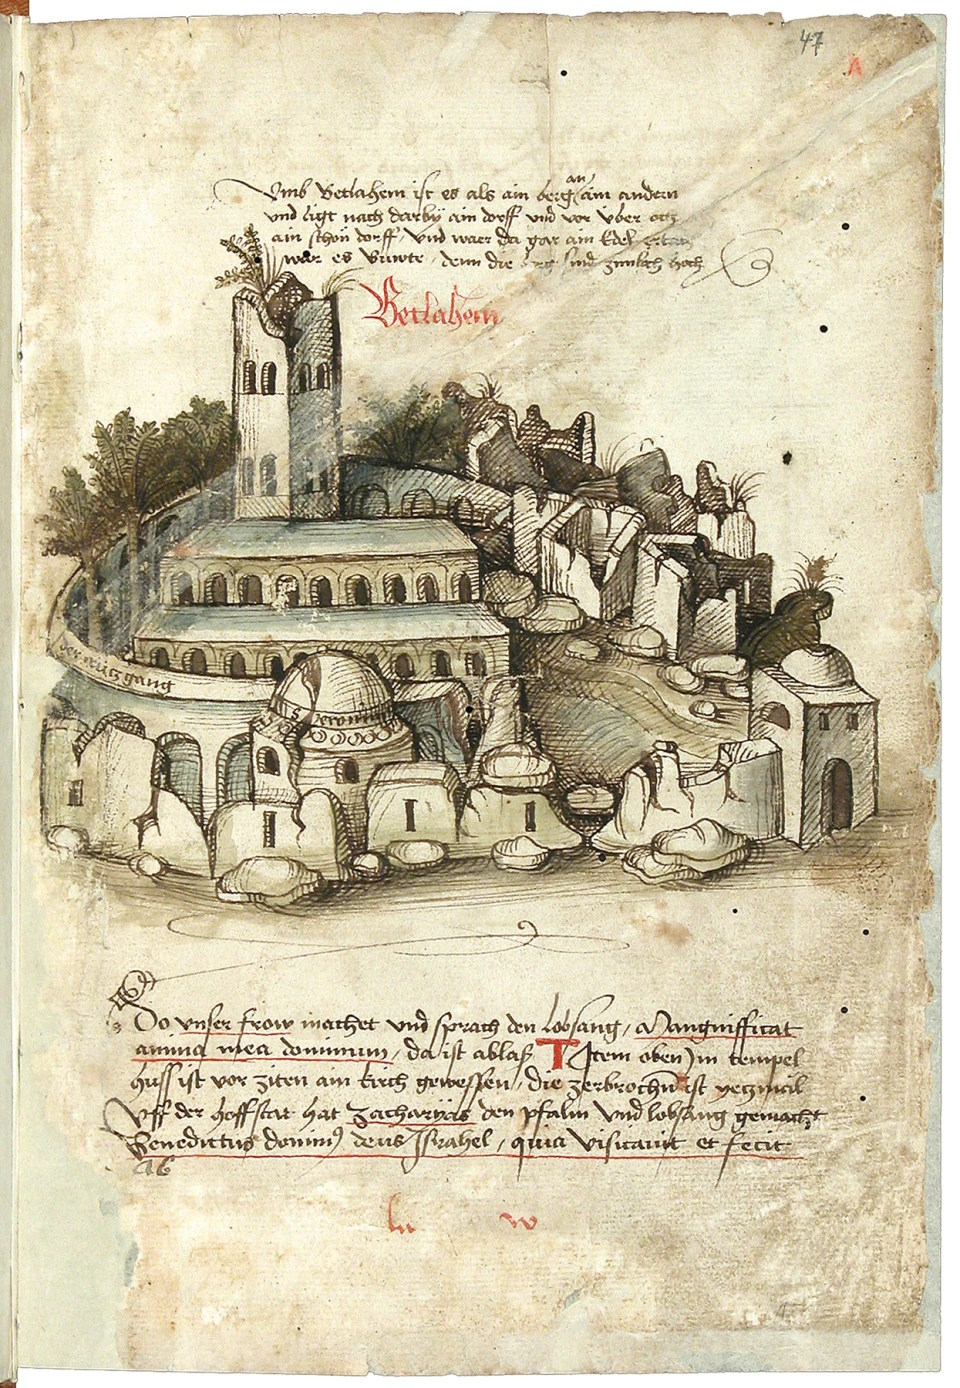 Bethlehem as depicted by Konrad von Grünenberg in 1487